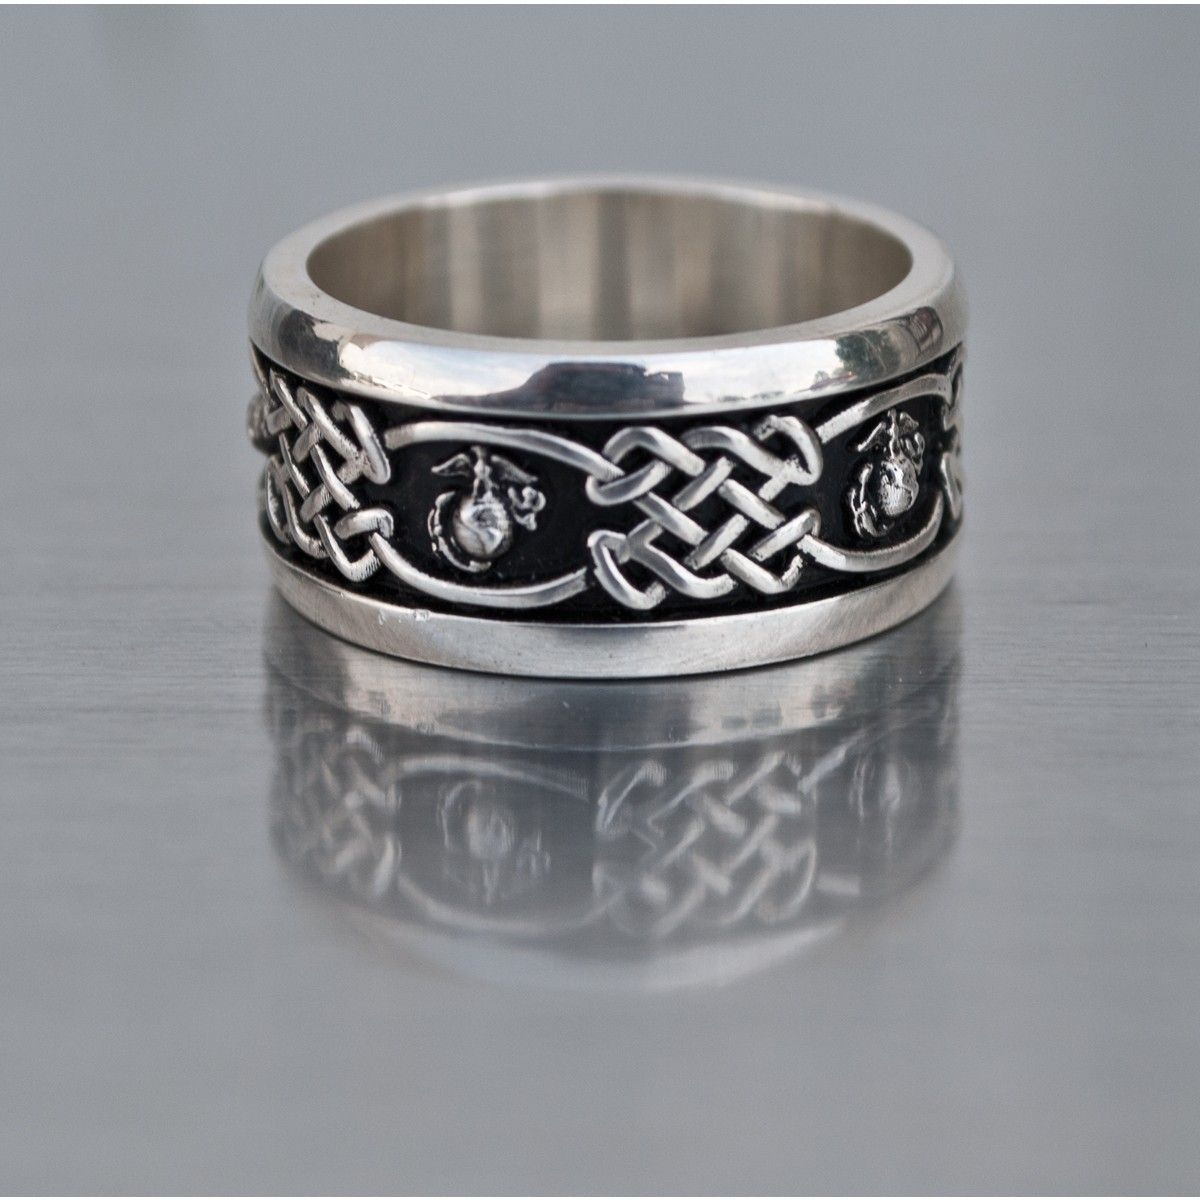 Marine Corps Solid Sterling Silver Wedding Ring Accessories Sgt Grit Marine Corps Sterling Silver Wedding Rings Silver Wedding Rings Celtic Wedding Rings